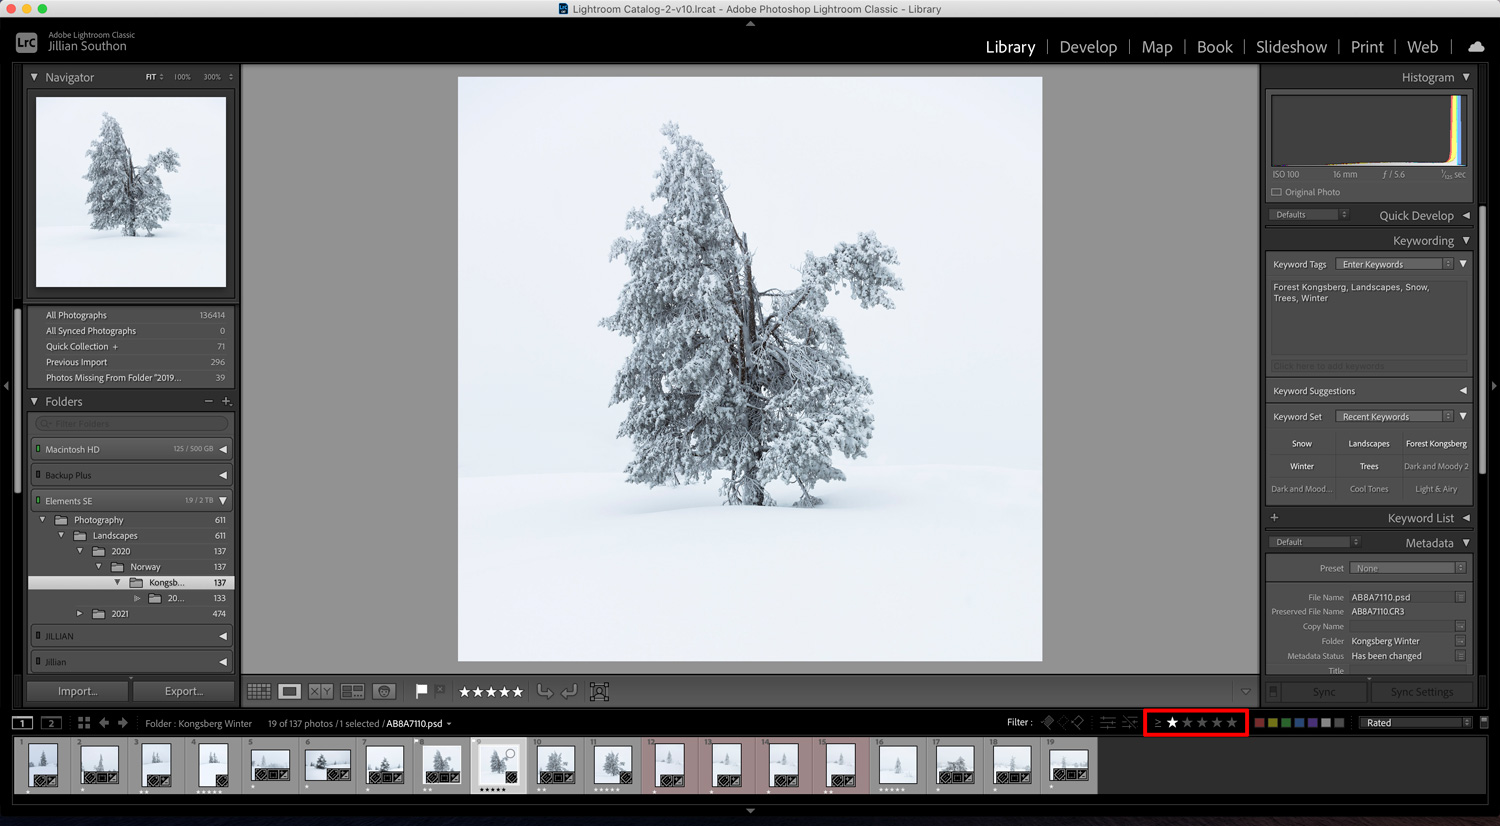 Organizing images in Lightroom